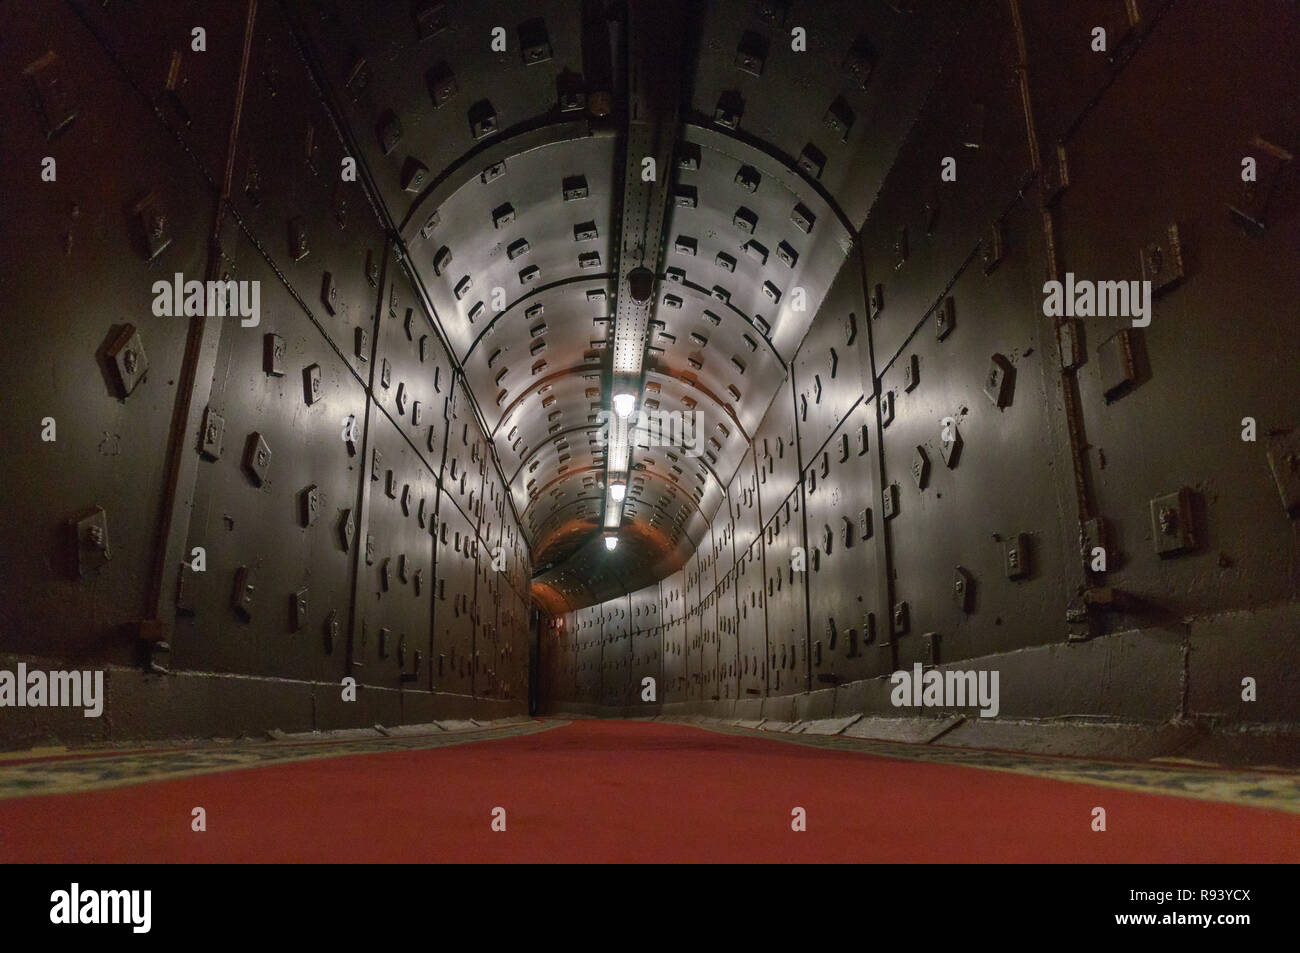 Moscow, Russia - October 25, 2017: Tunnel at Bunker-42, anti-nuclear underground facility built in 1956 as command post of strategic nuclear forces of - Stock Image